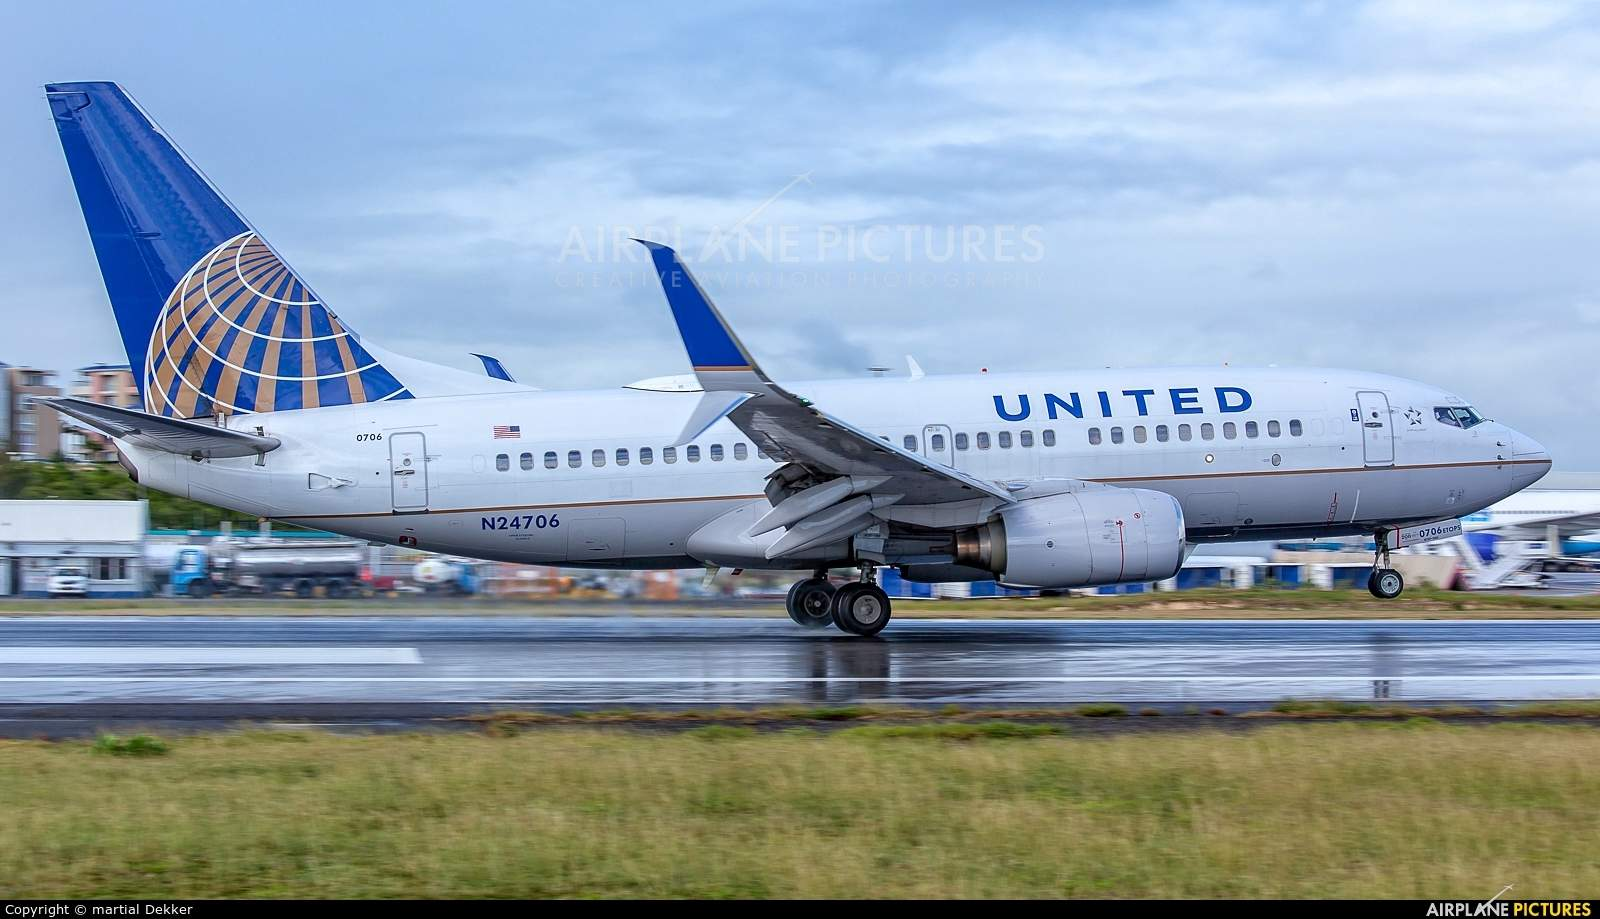 United Airlines places order for 40x Boeing 737-700